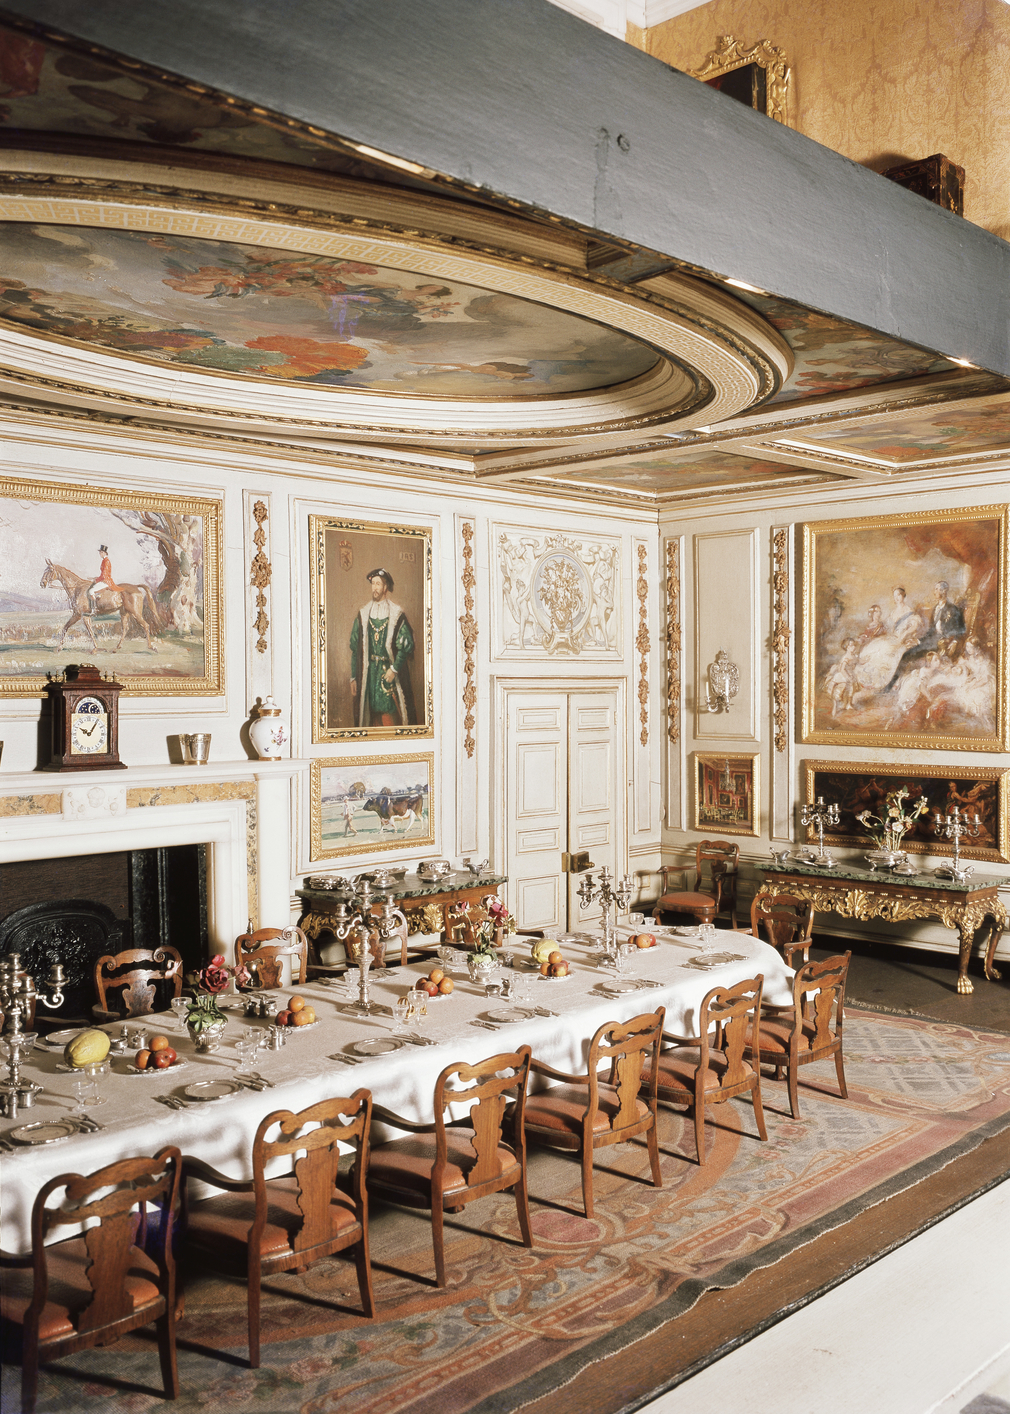 Dolls' House Dining Room